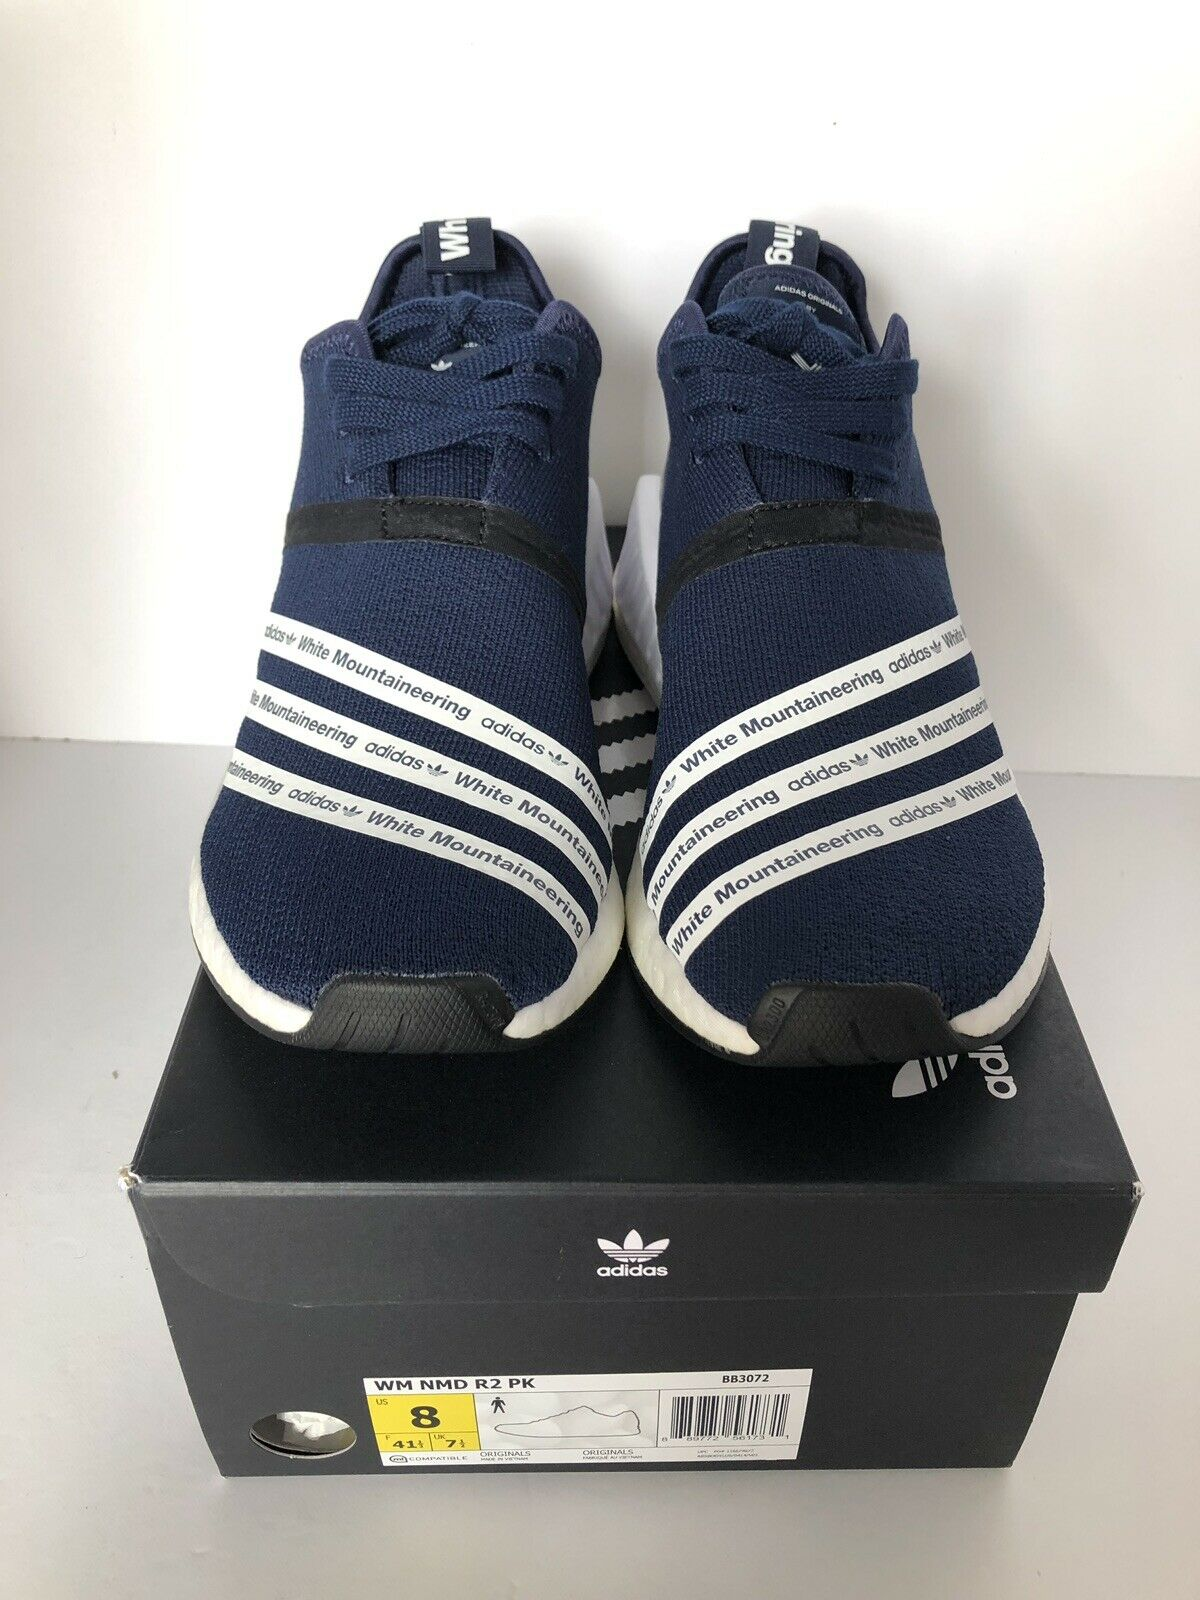 66c966e39d5c1 Adidas White Mountaineering NMD R2 PK Men s Size 8 - BB3072 - New In Box -  Brand zyjkea2924-Athletic Shoes